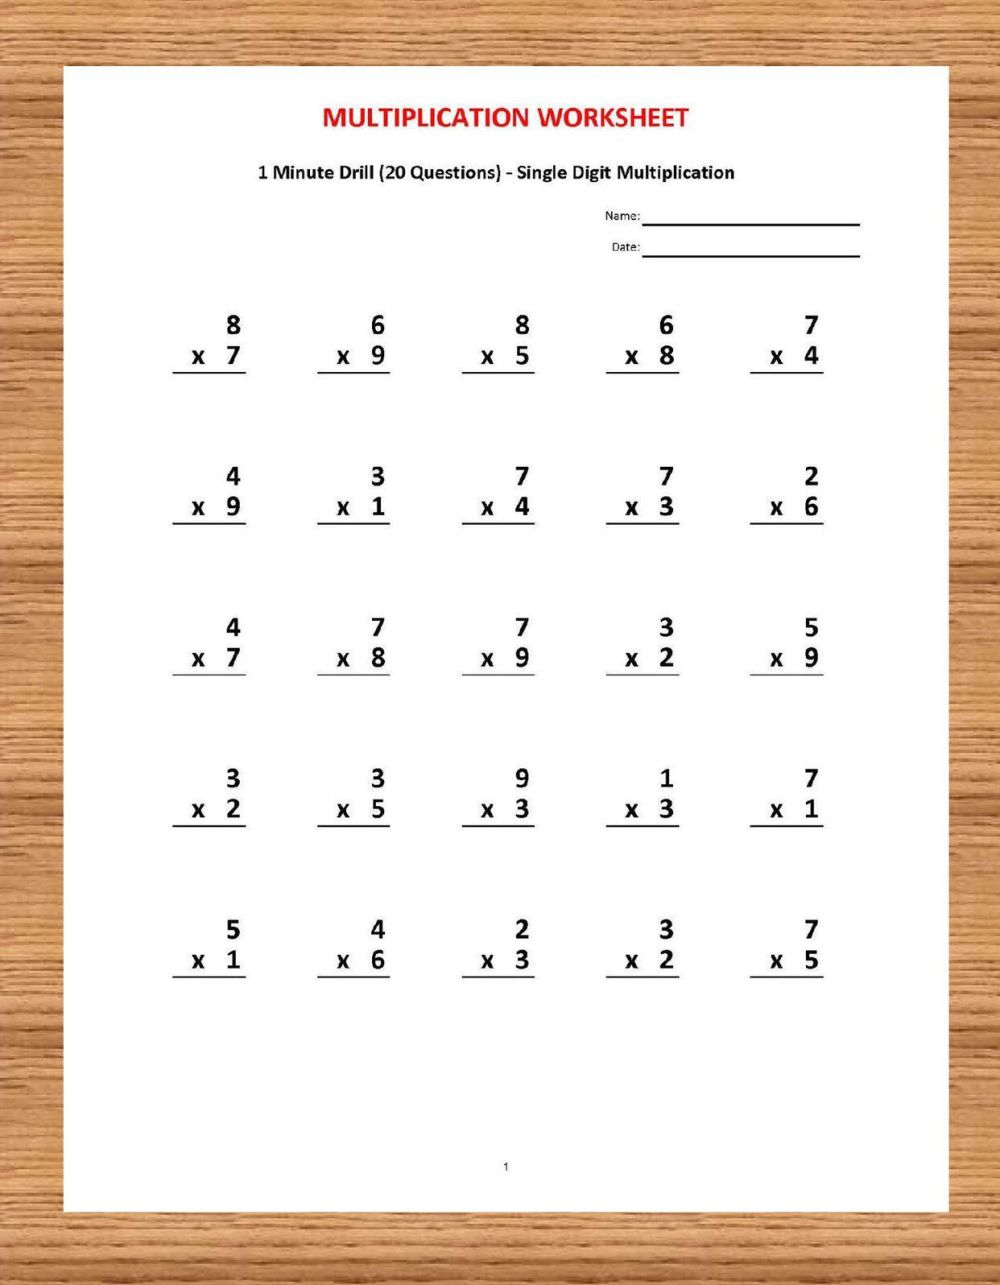 medium resolution of 16 Best Multiplication Worksheets 2s And 3s images on Best Worksheets  Collection